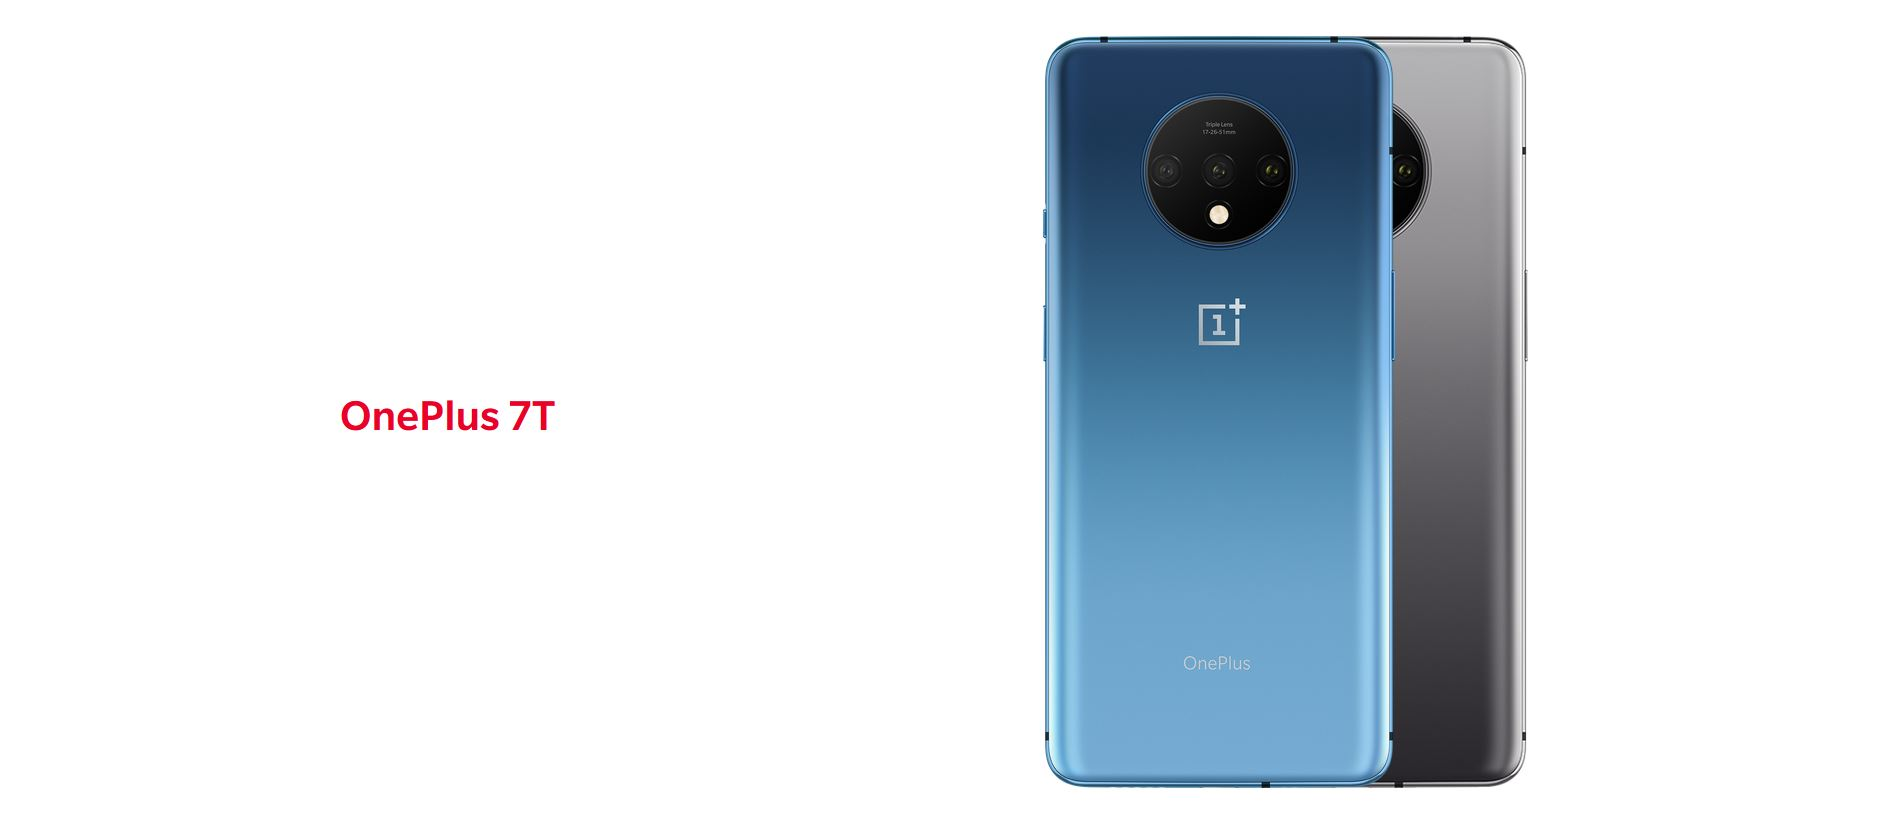 oneplus-7t-official-price-specs-release-date-available-philippines